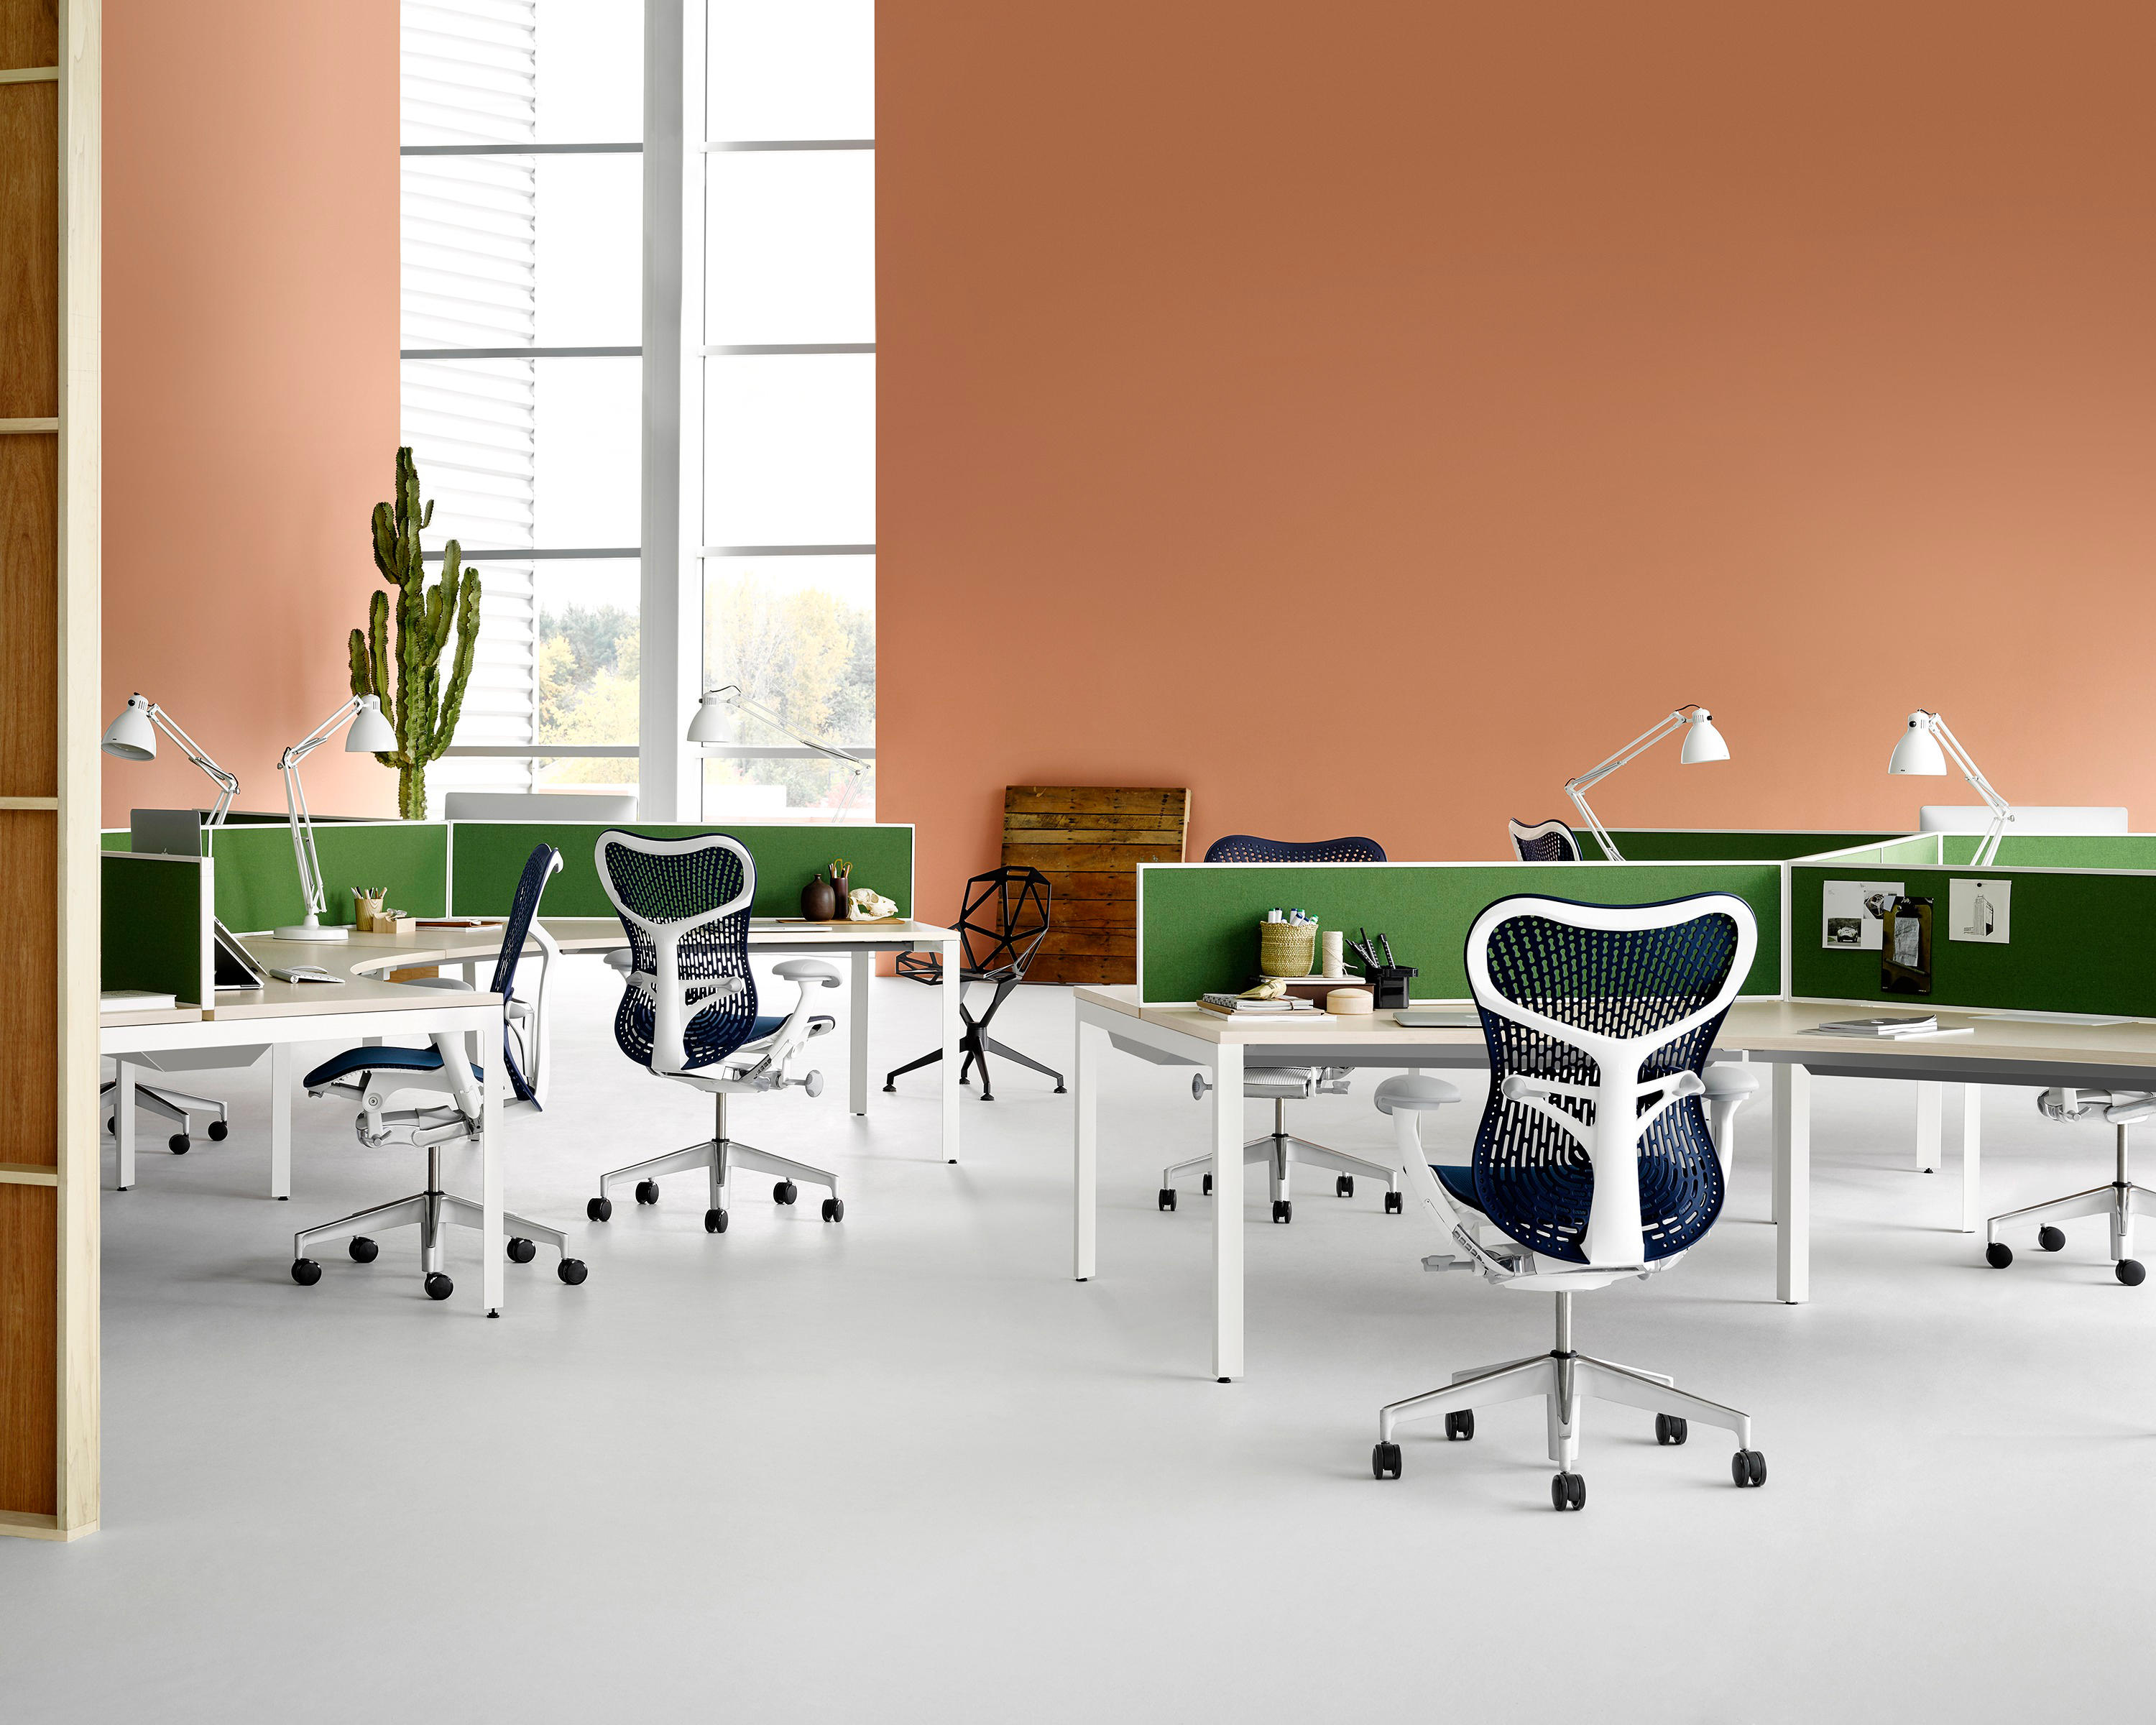 Layout Studio Von Herman Miller · Layout Studio Von Herman Miller ...